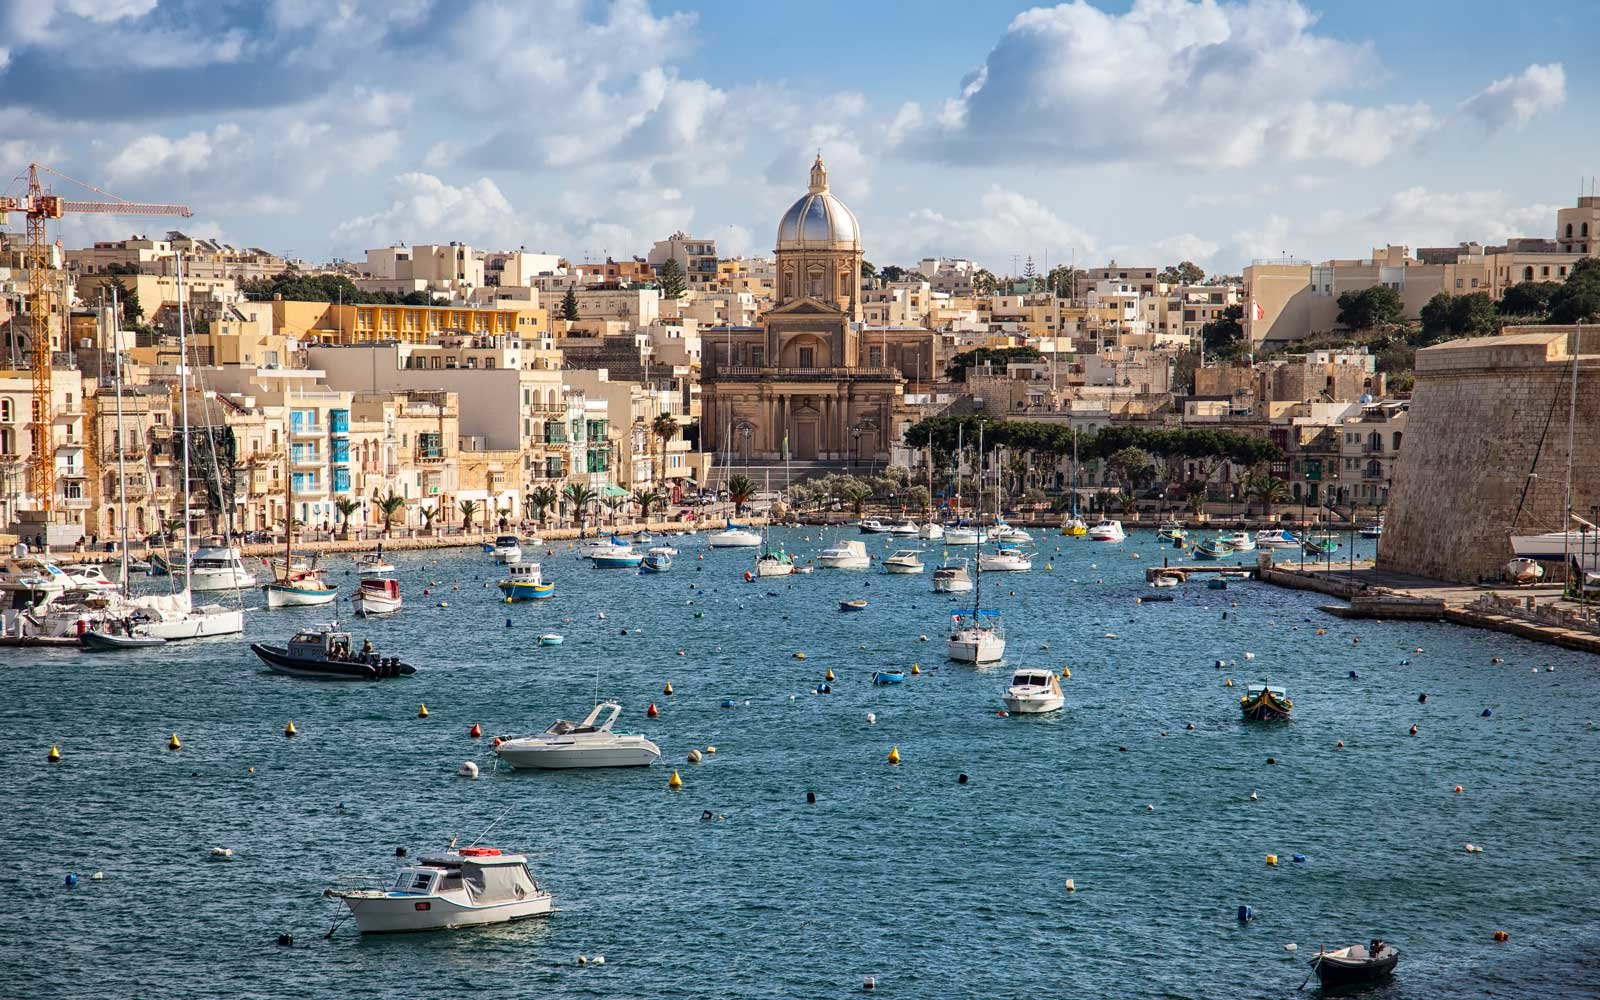 Sailing boats on Senglea marina in Grand Bay, Valetta, Malta